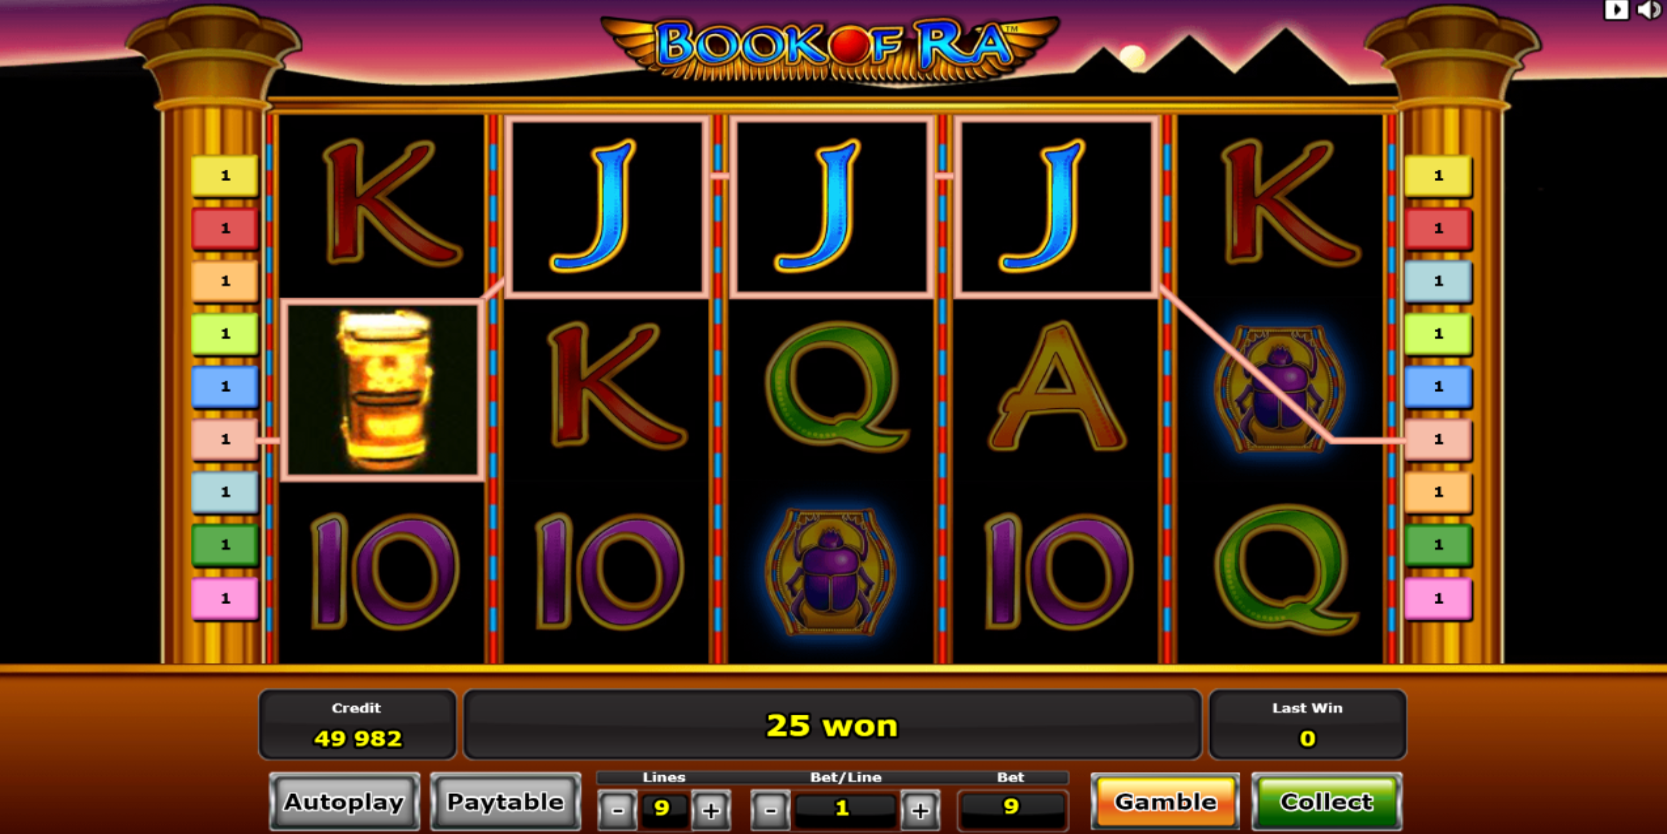 Book of Ra slot game Gamble or Collect